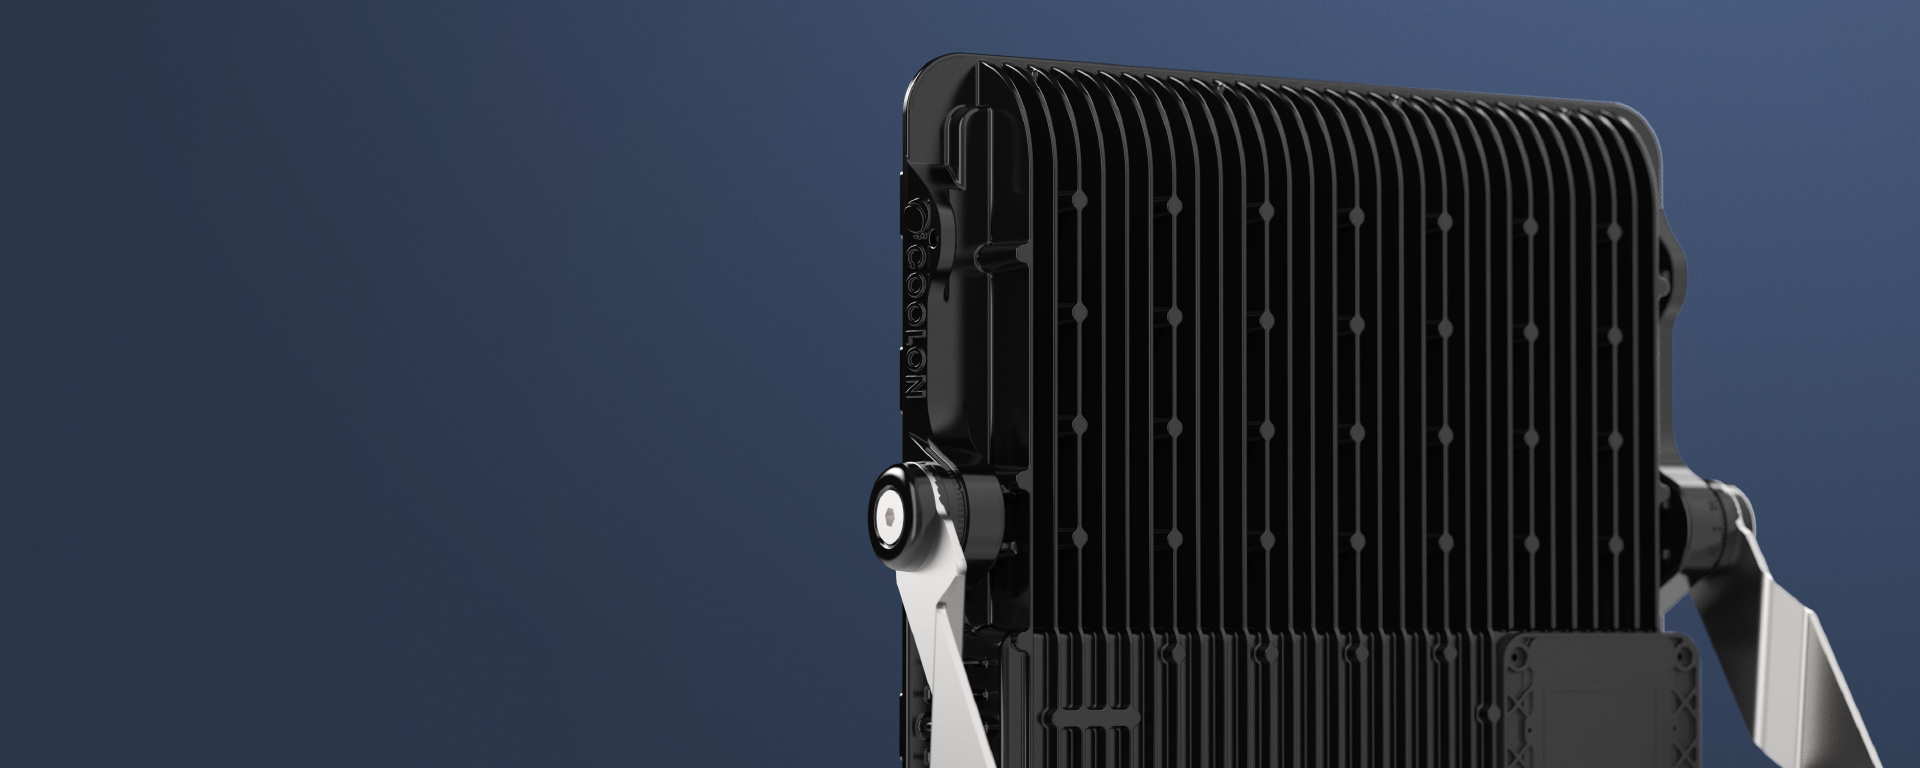 Cassidy LED mining floodlight in application,  view from the back, close up on heat sink